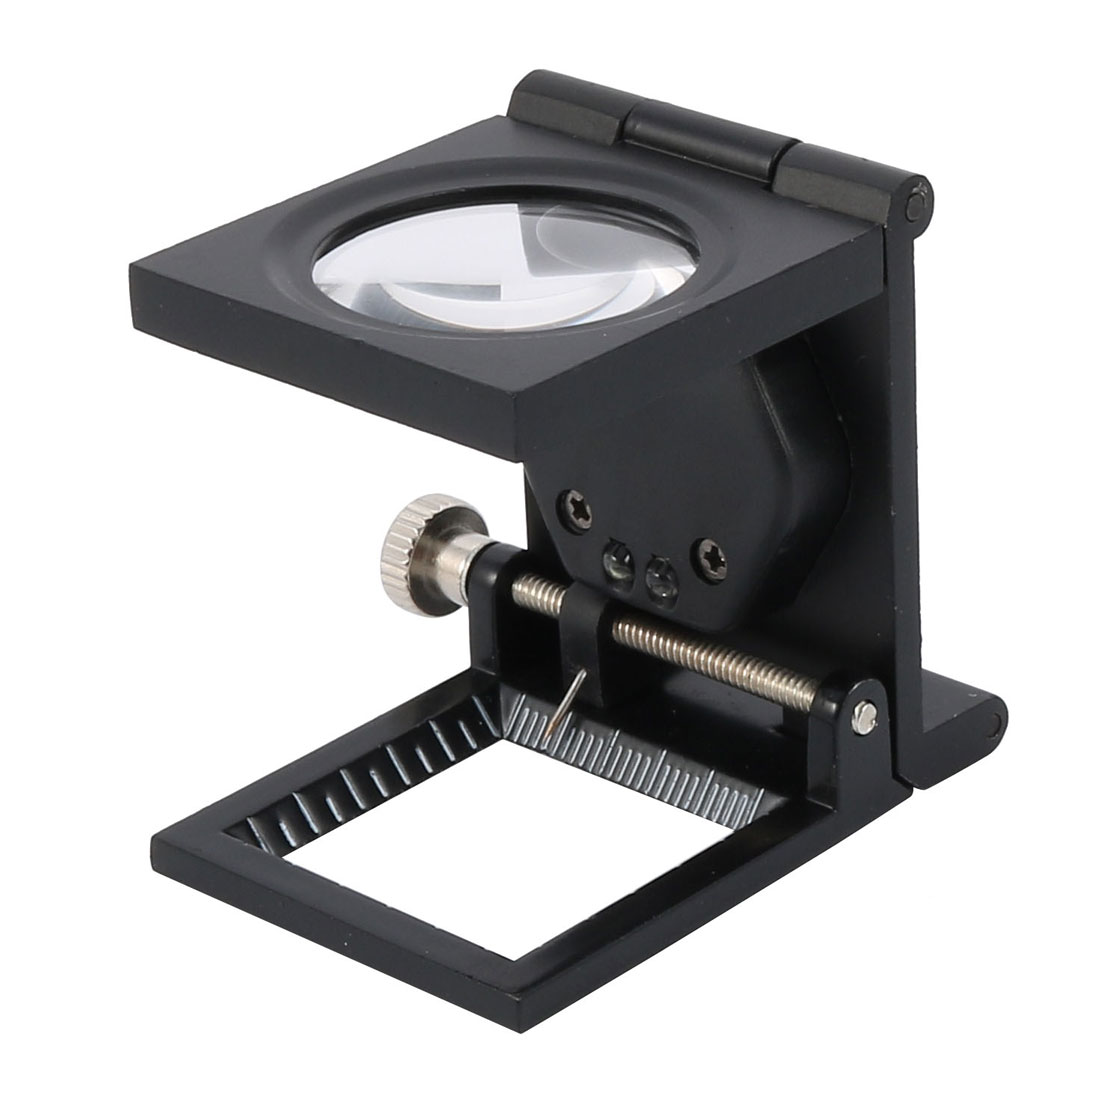 Folding Magnifier Illuminated Magnifier Magnifying Glass Loupe 10X w  Light